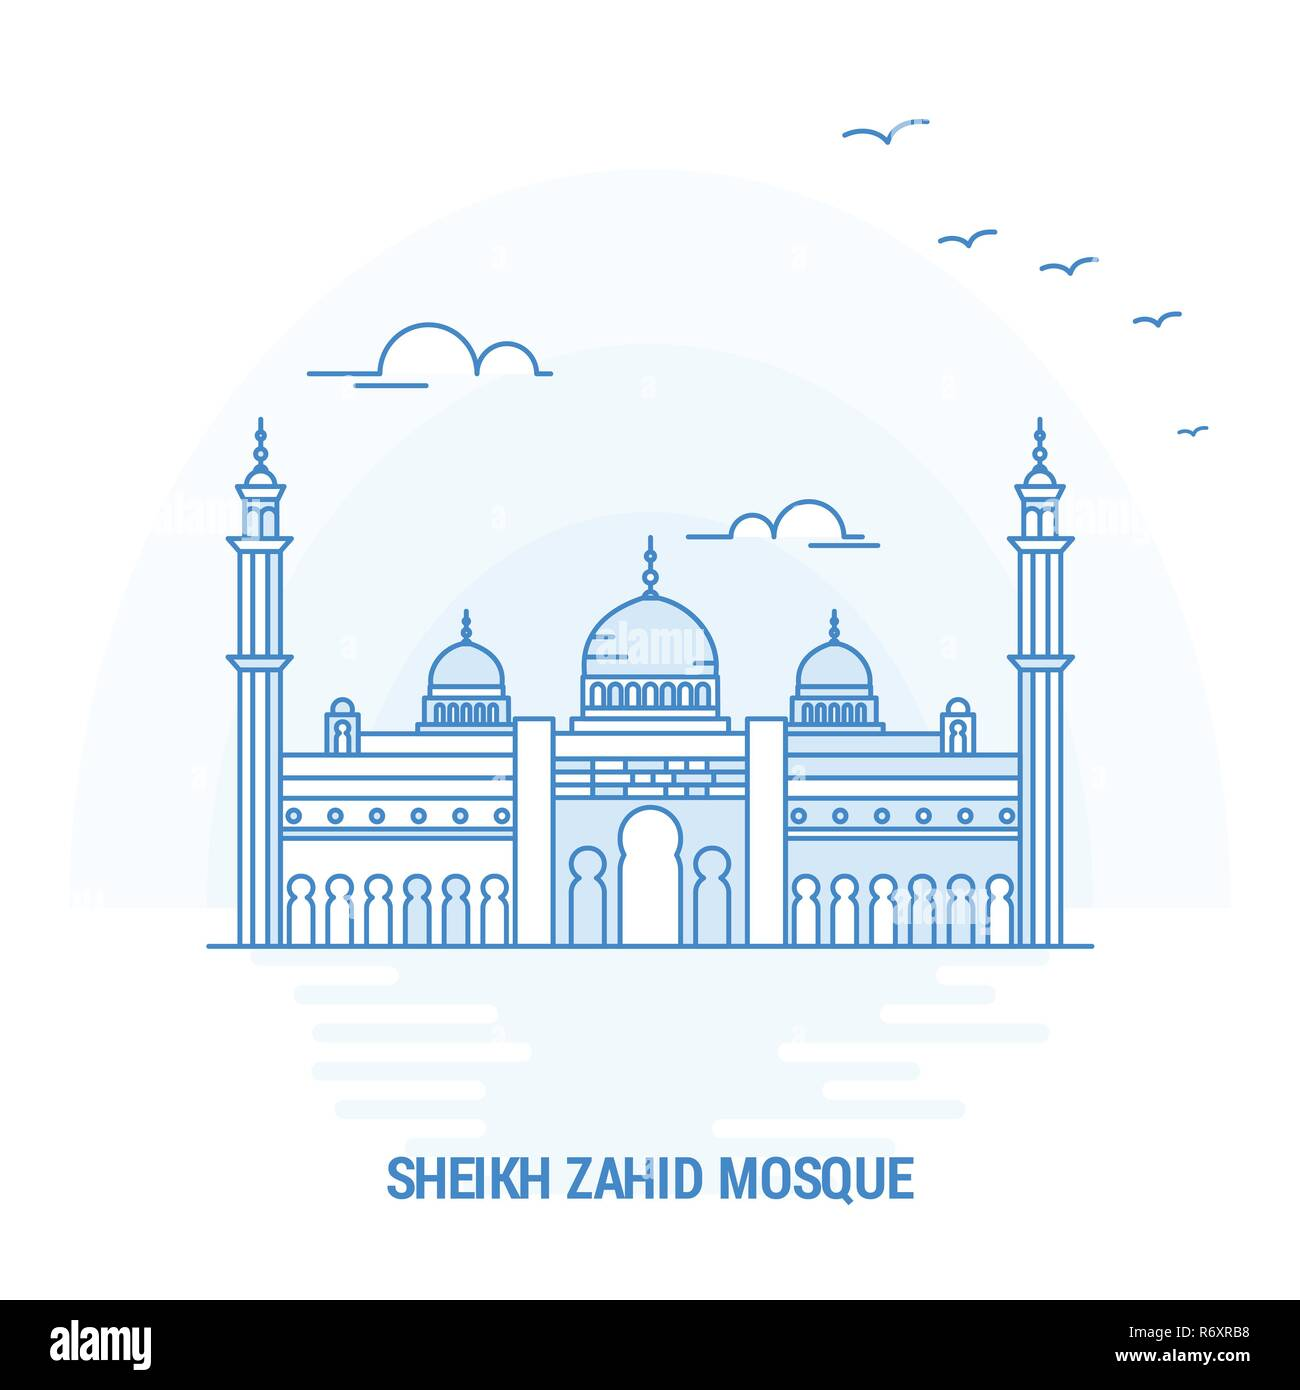 SHEIKH ZAHID MOSQUE Blue Landmark. Creative background and Poster Template - Stock Image